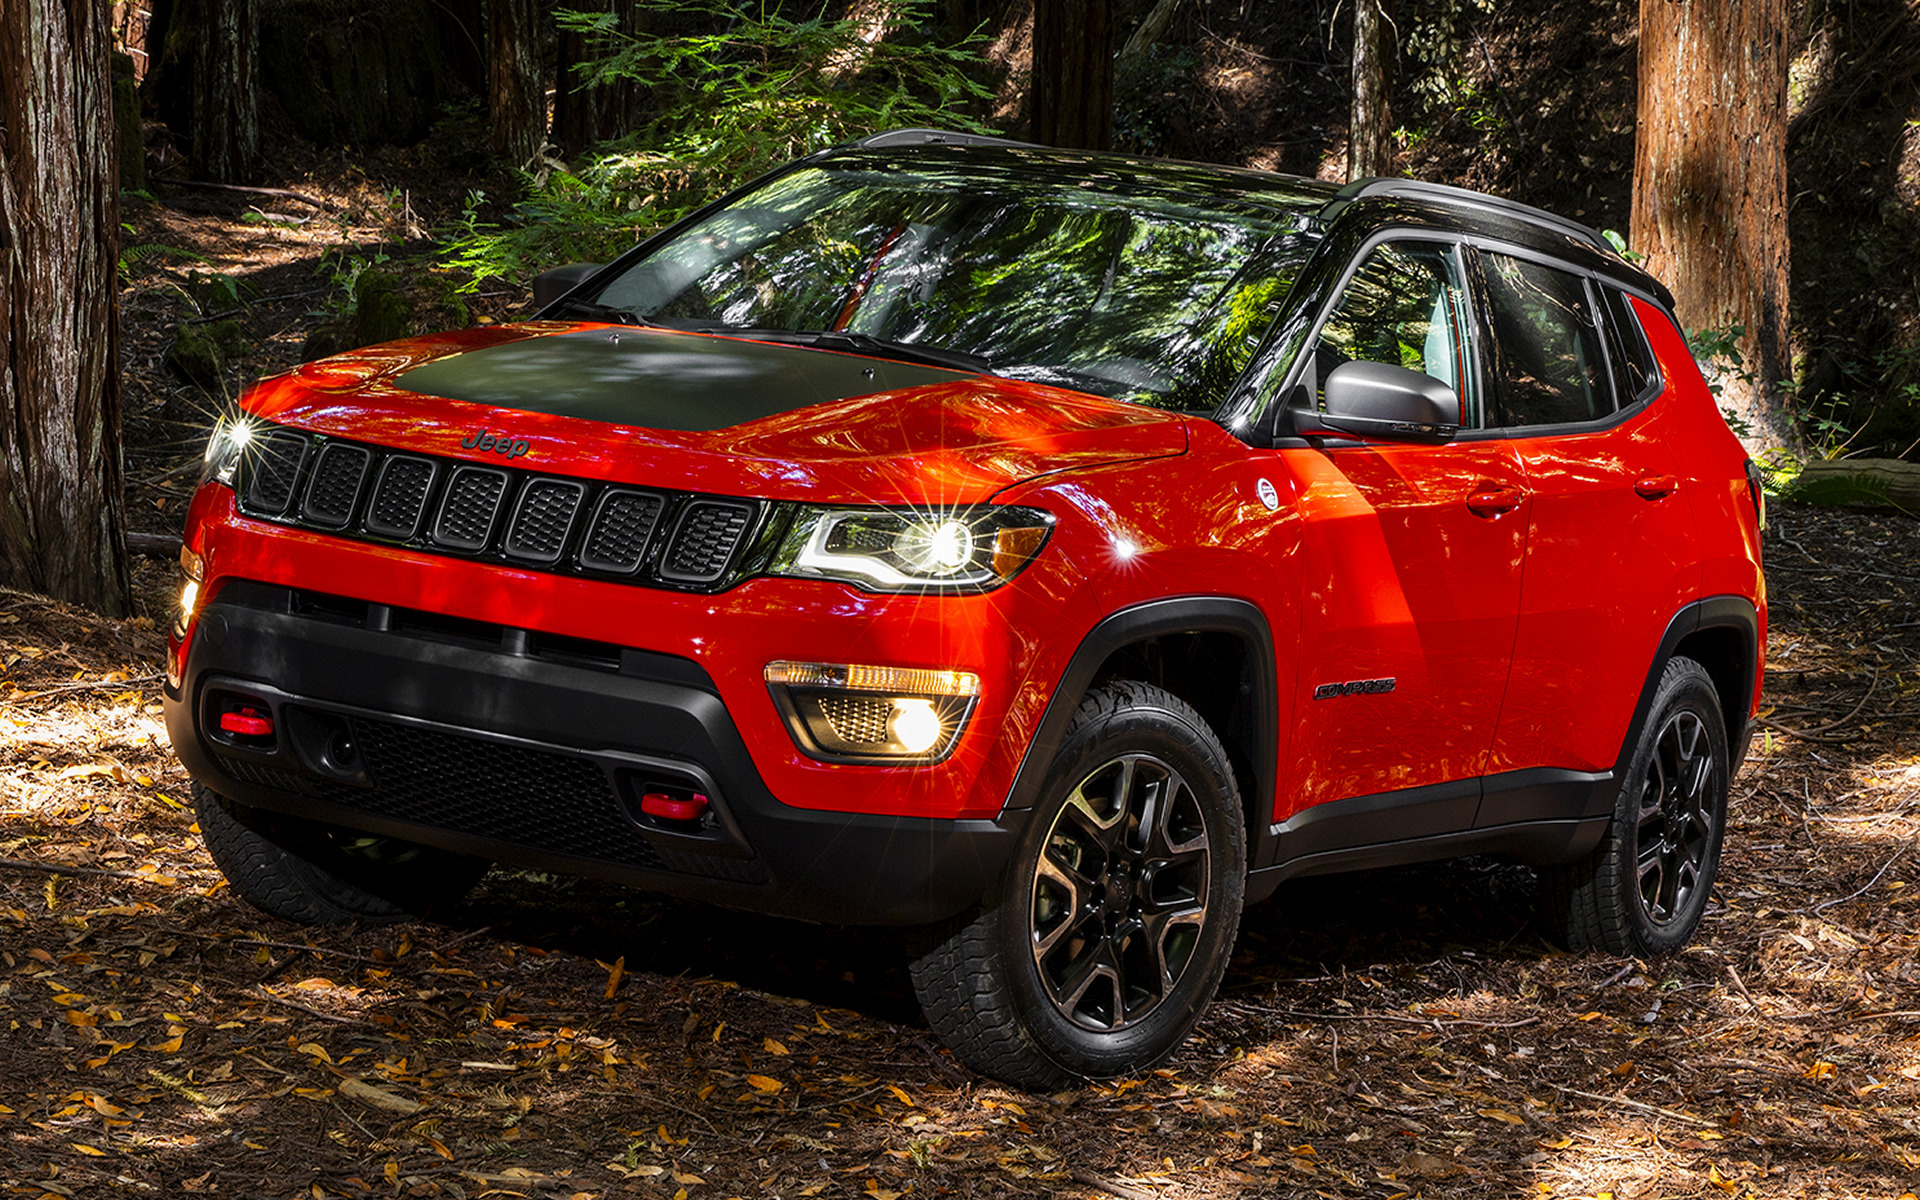 2017 Dodge Ram >> Jeep Compass Trailhawk (2017) Wallpapers and HD Images - Car Pixel